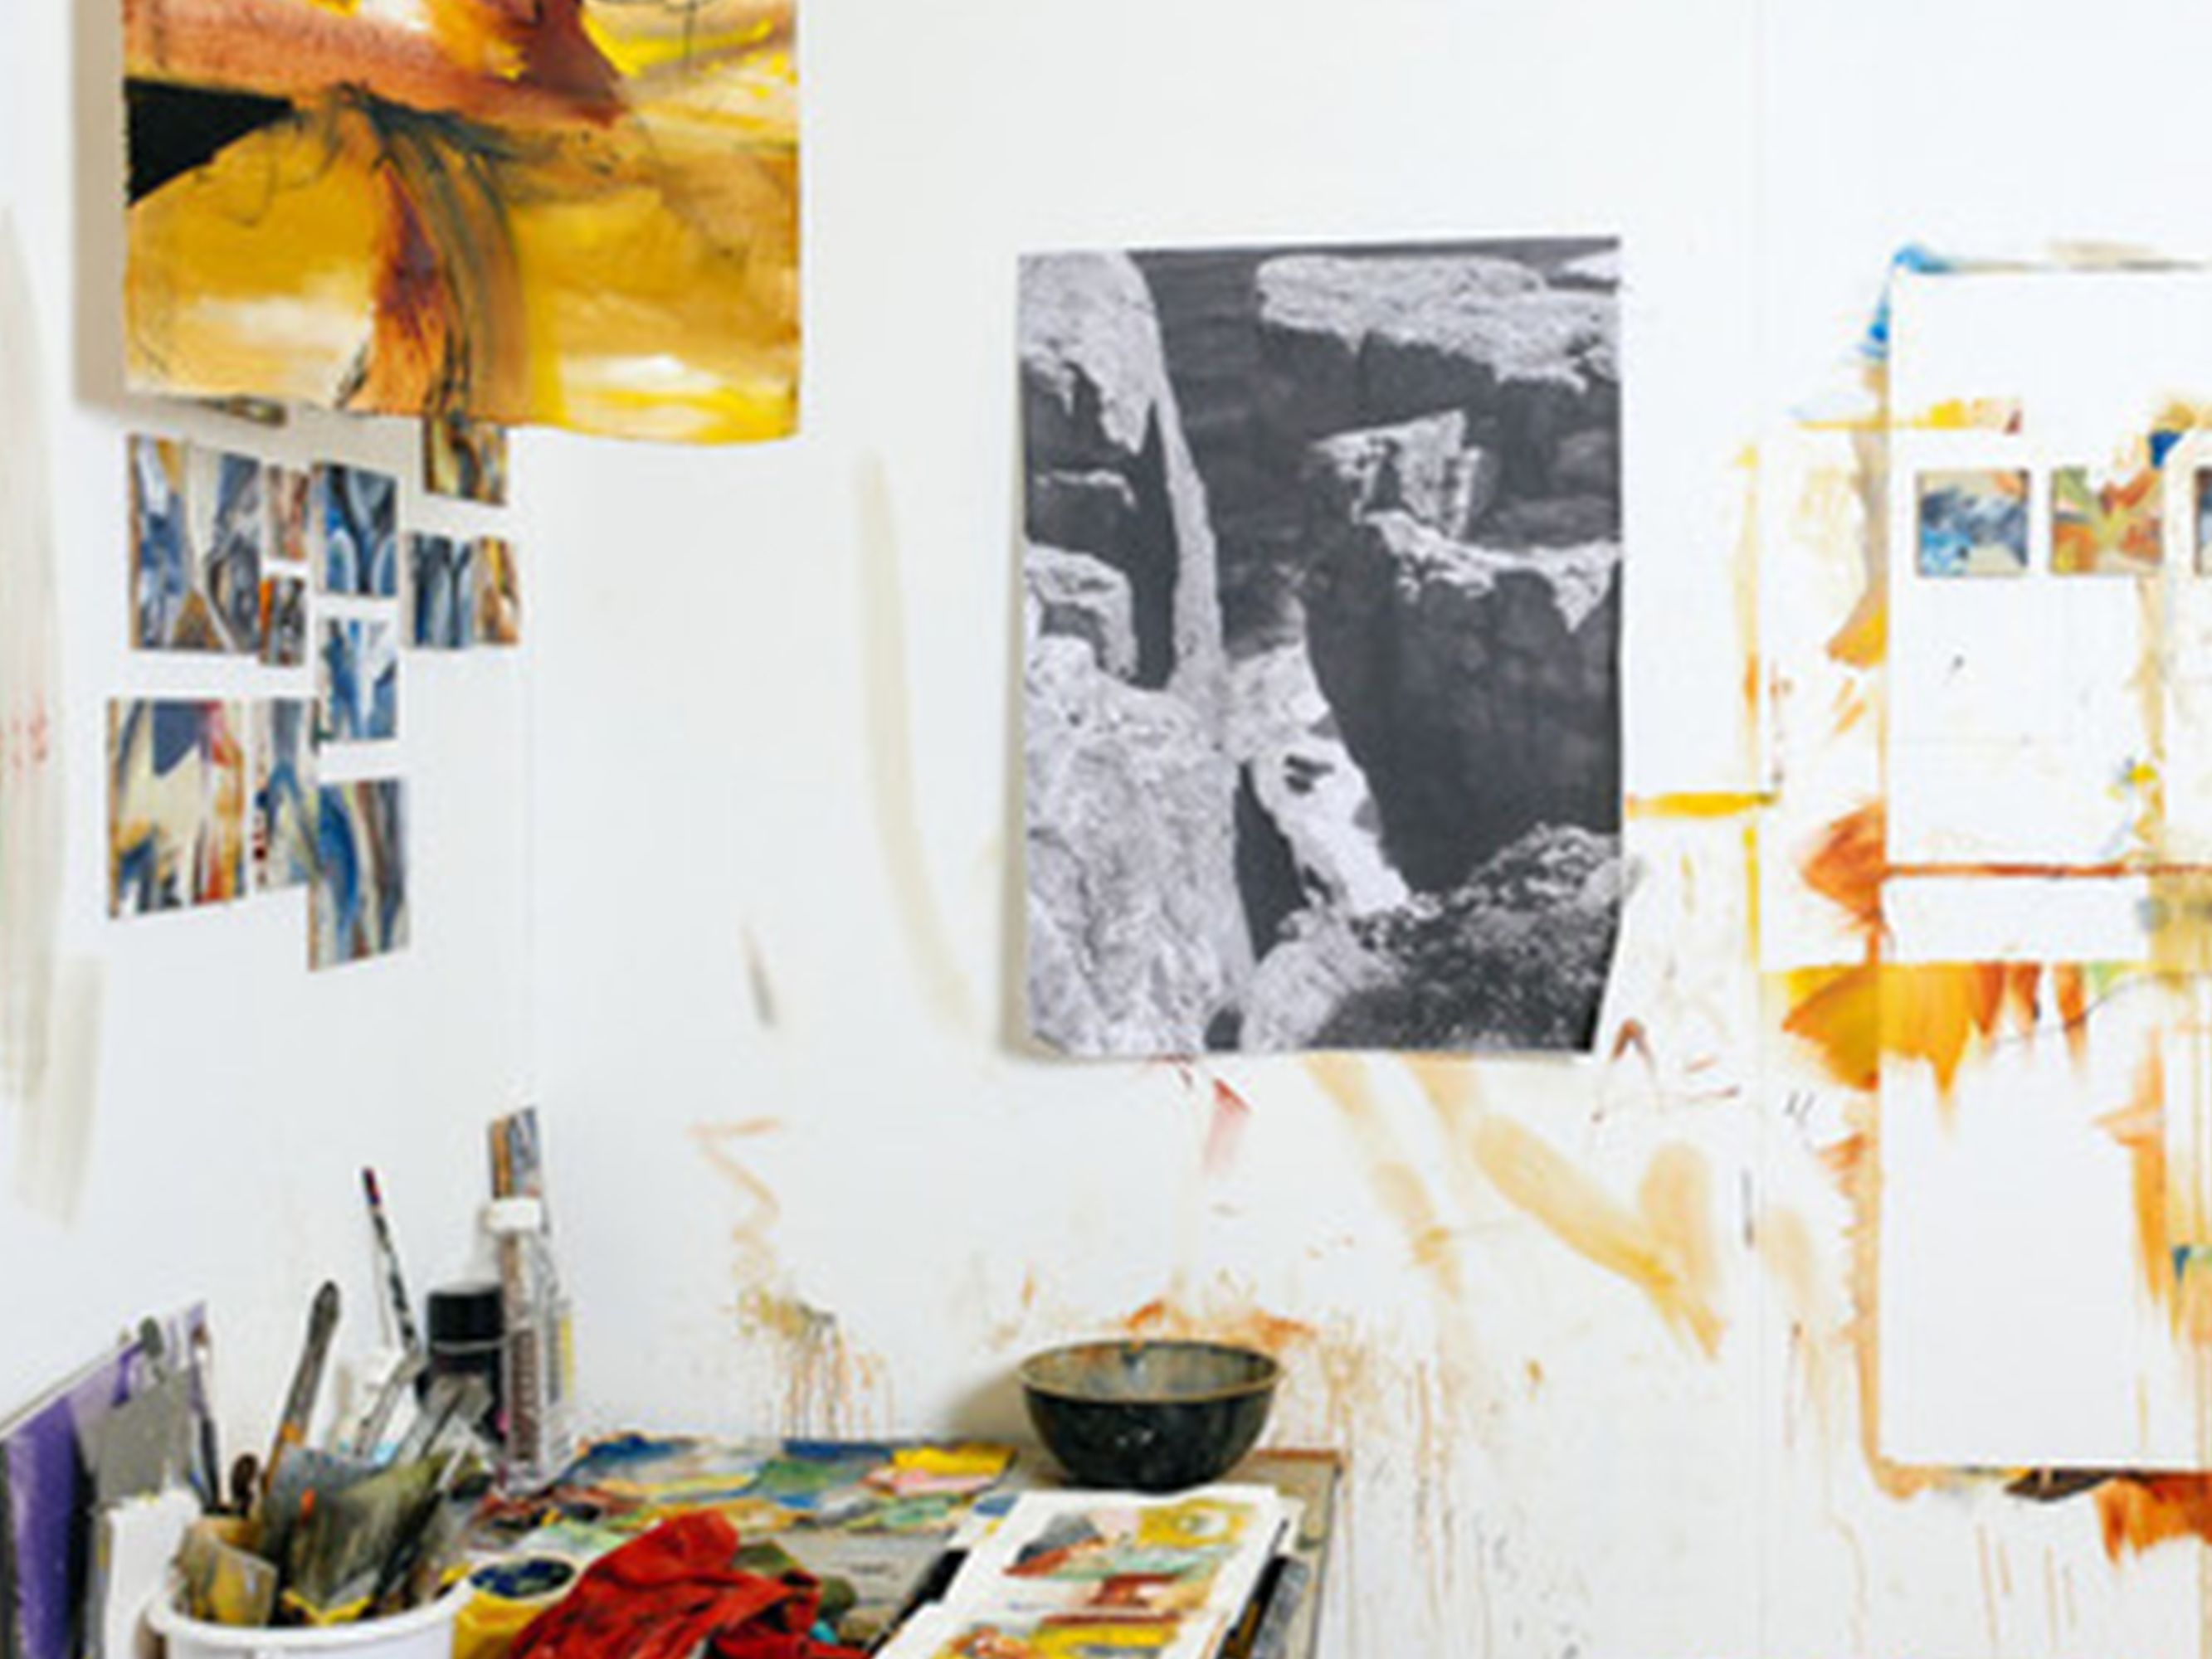 Photo of work in a studio